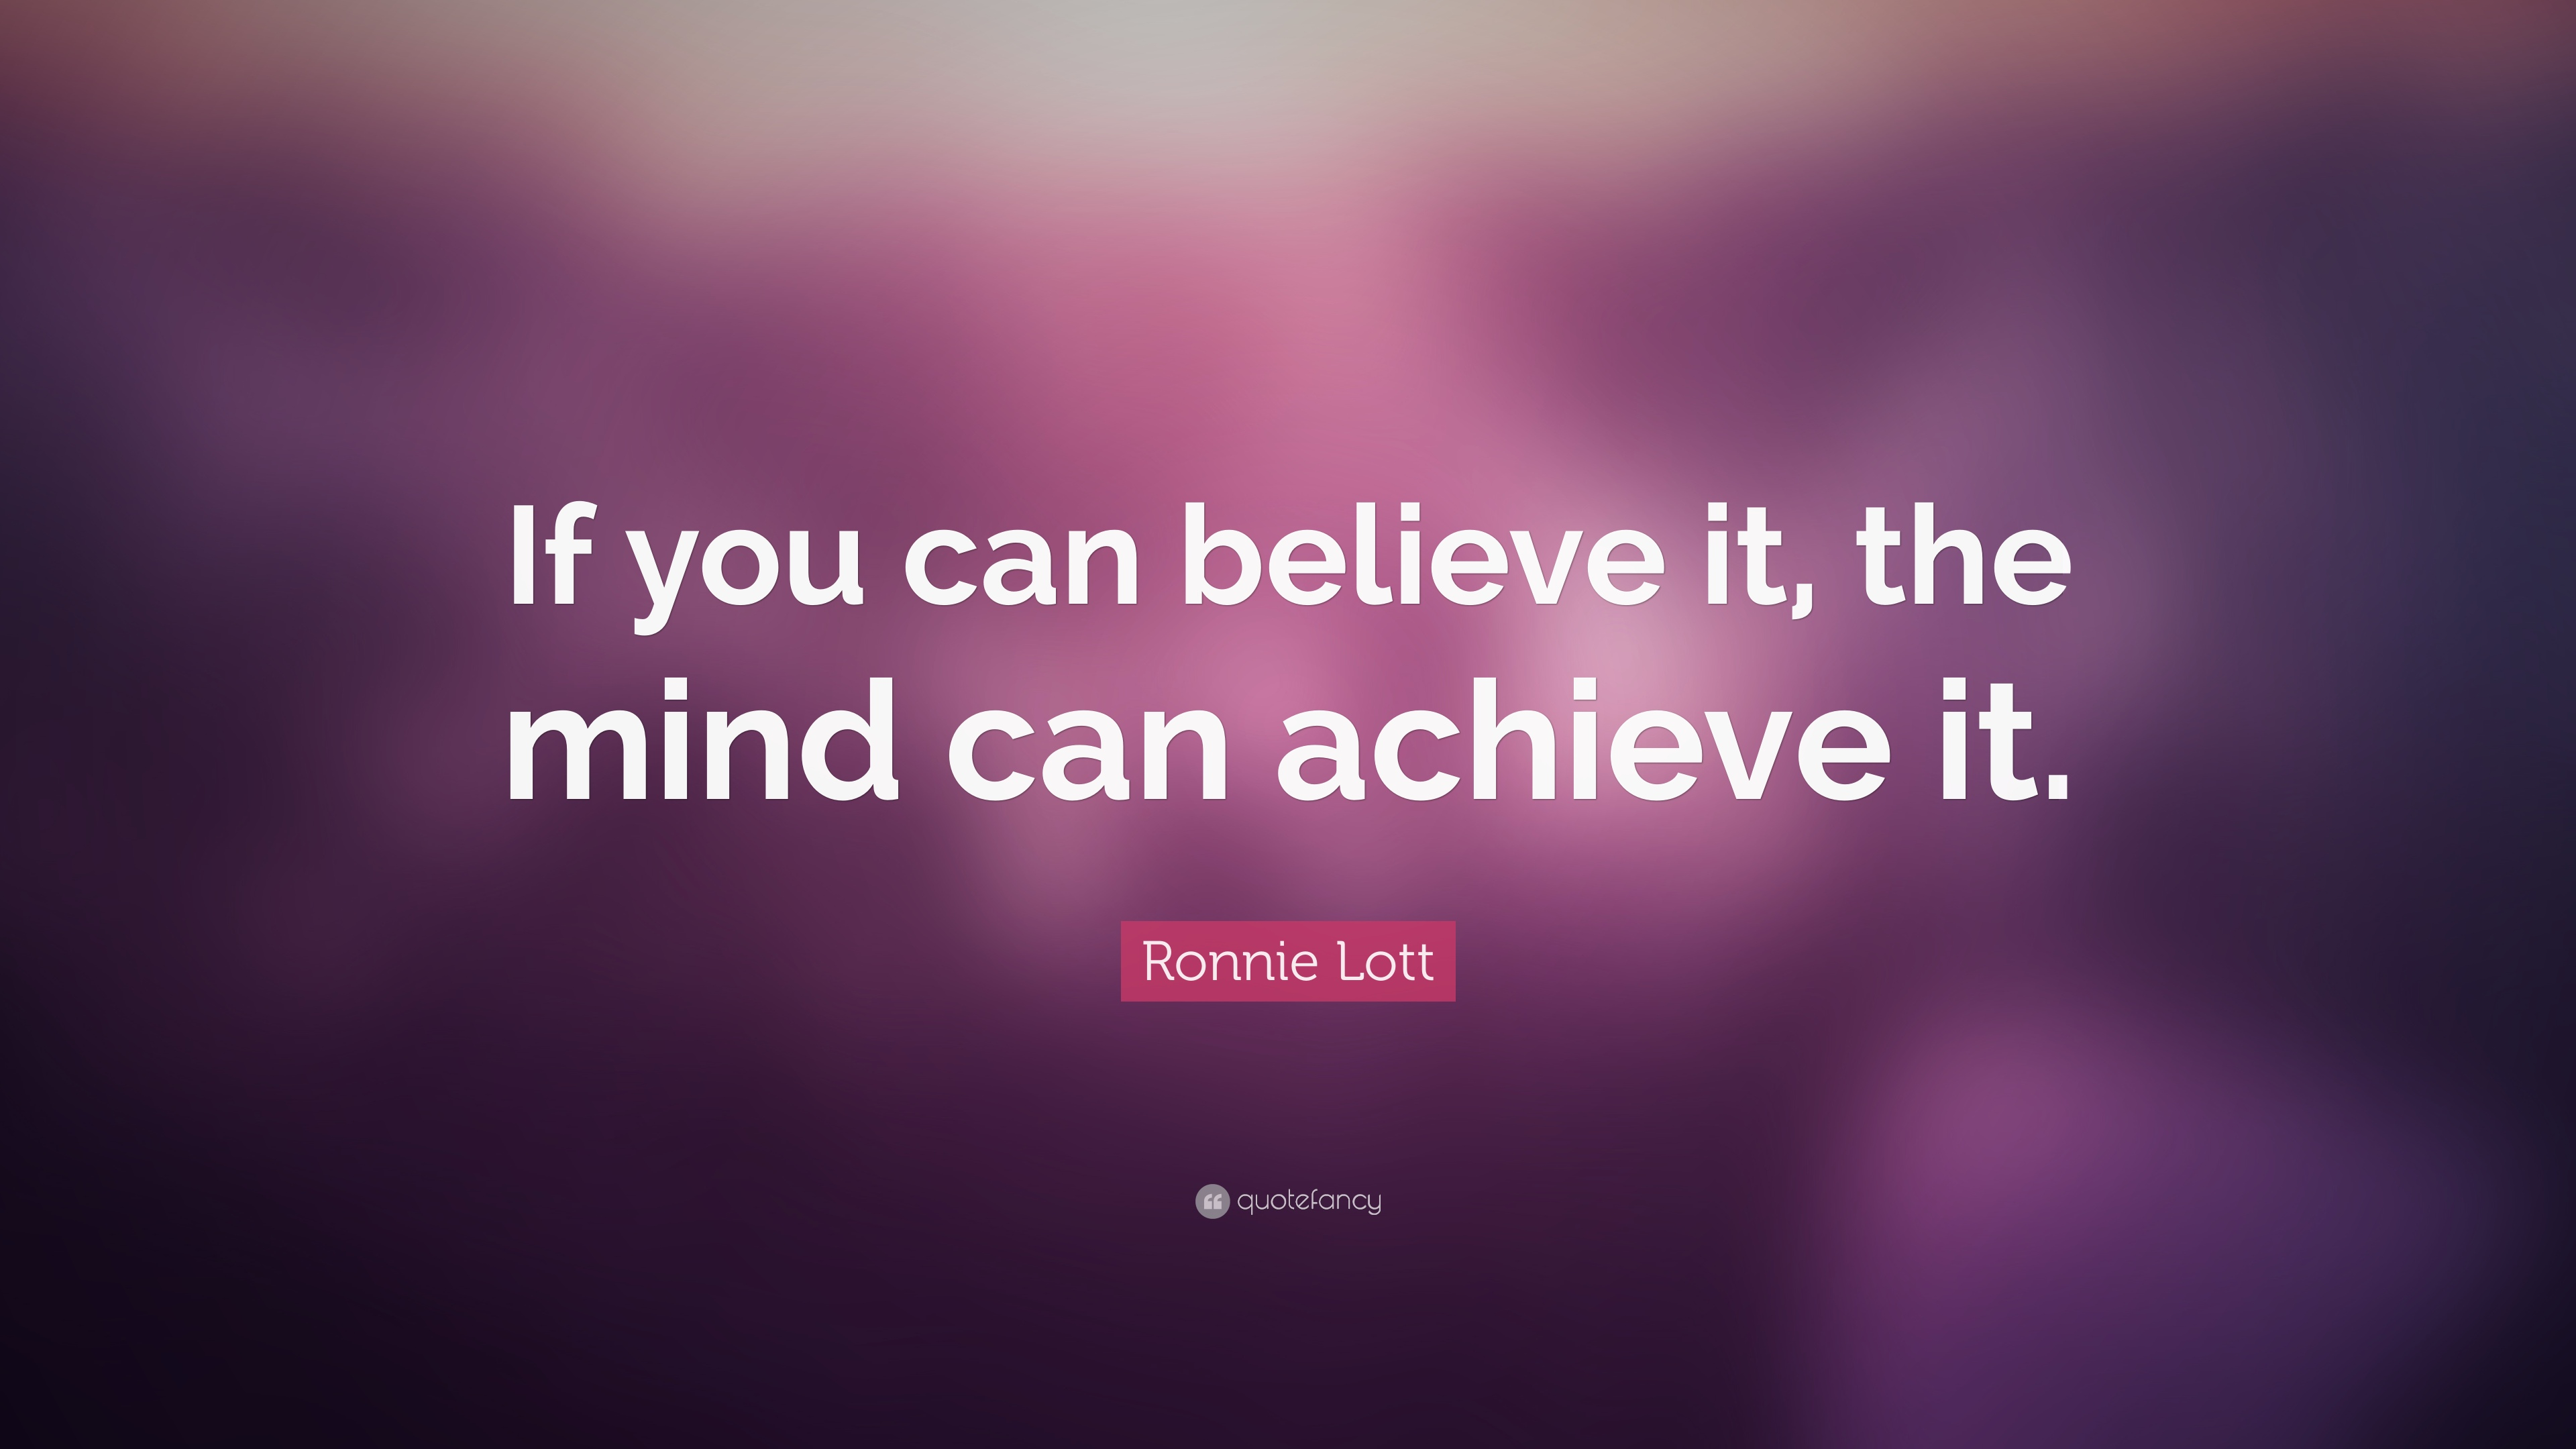 Attrayant Ronnie Lott Quote: U201cIf You Can Believe It, The Mind Can Achieve It